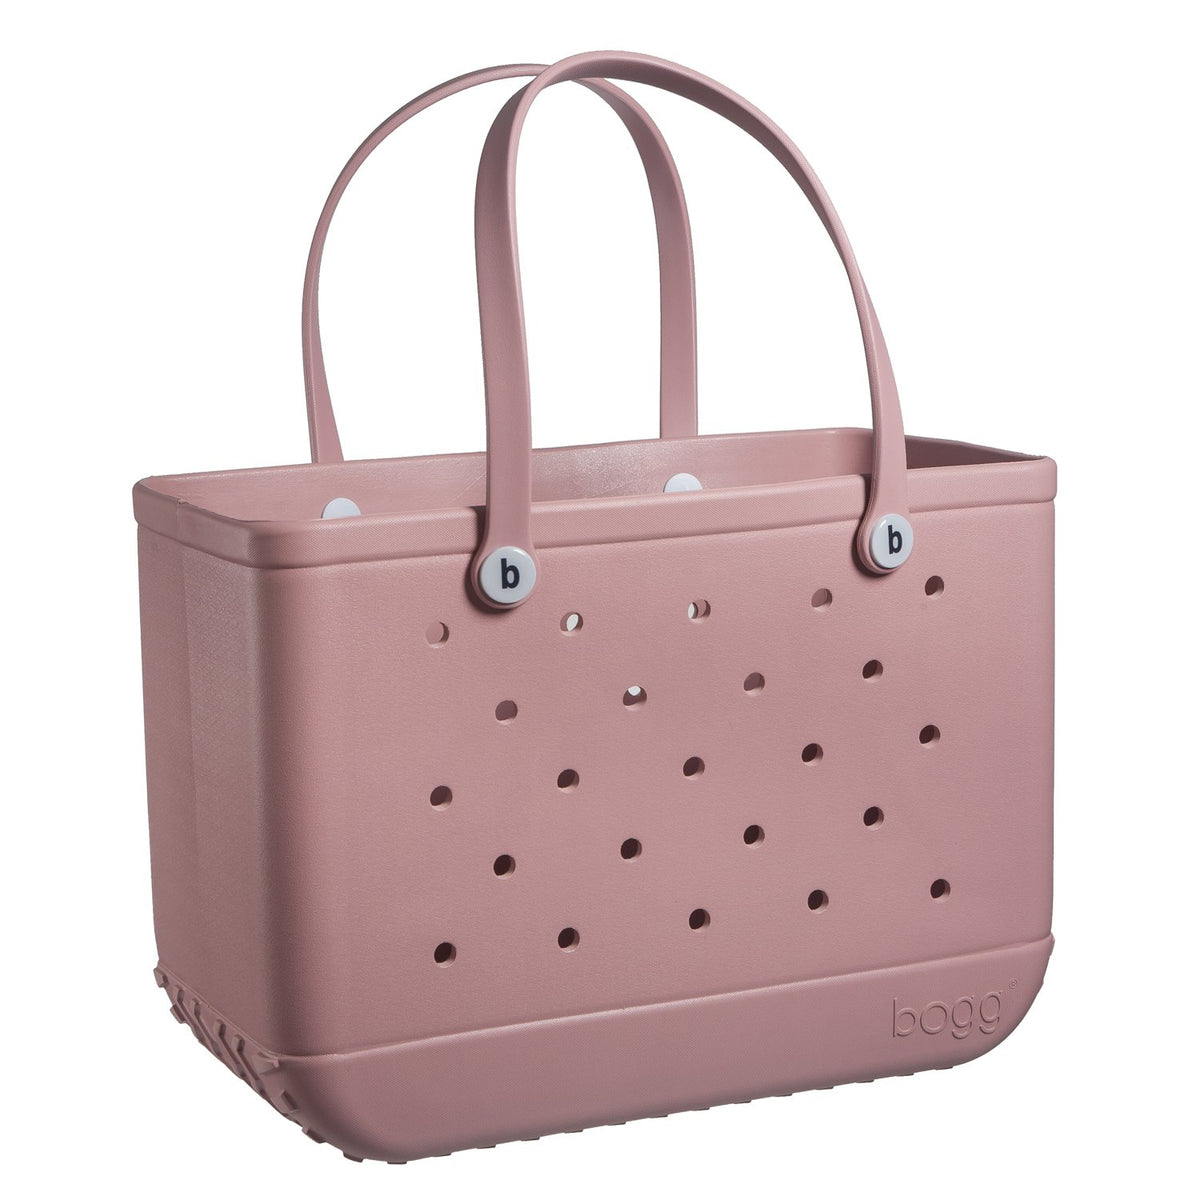 Original Bogg Bag in Blush